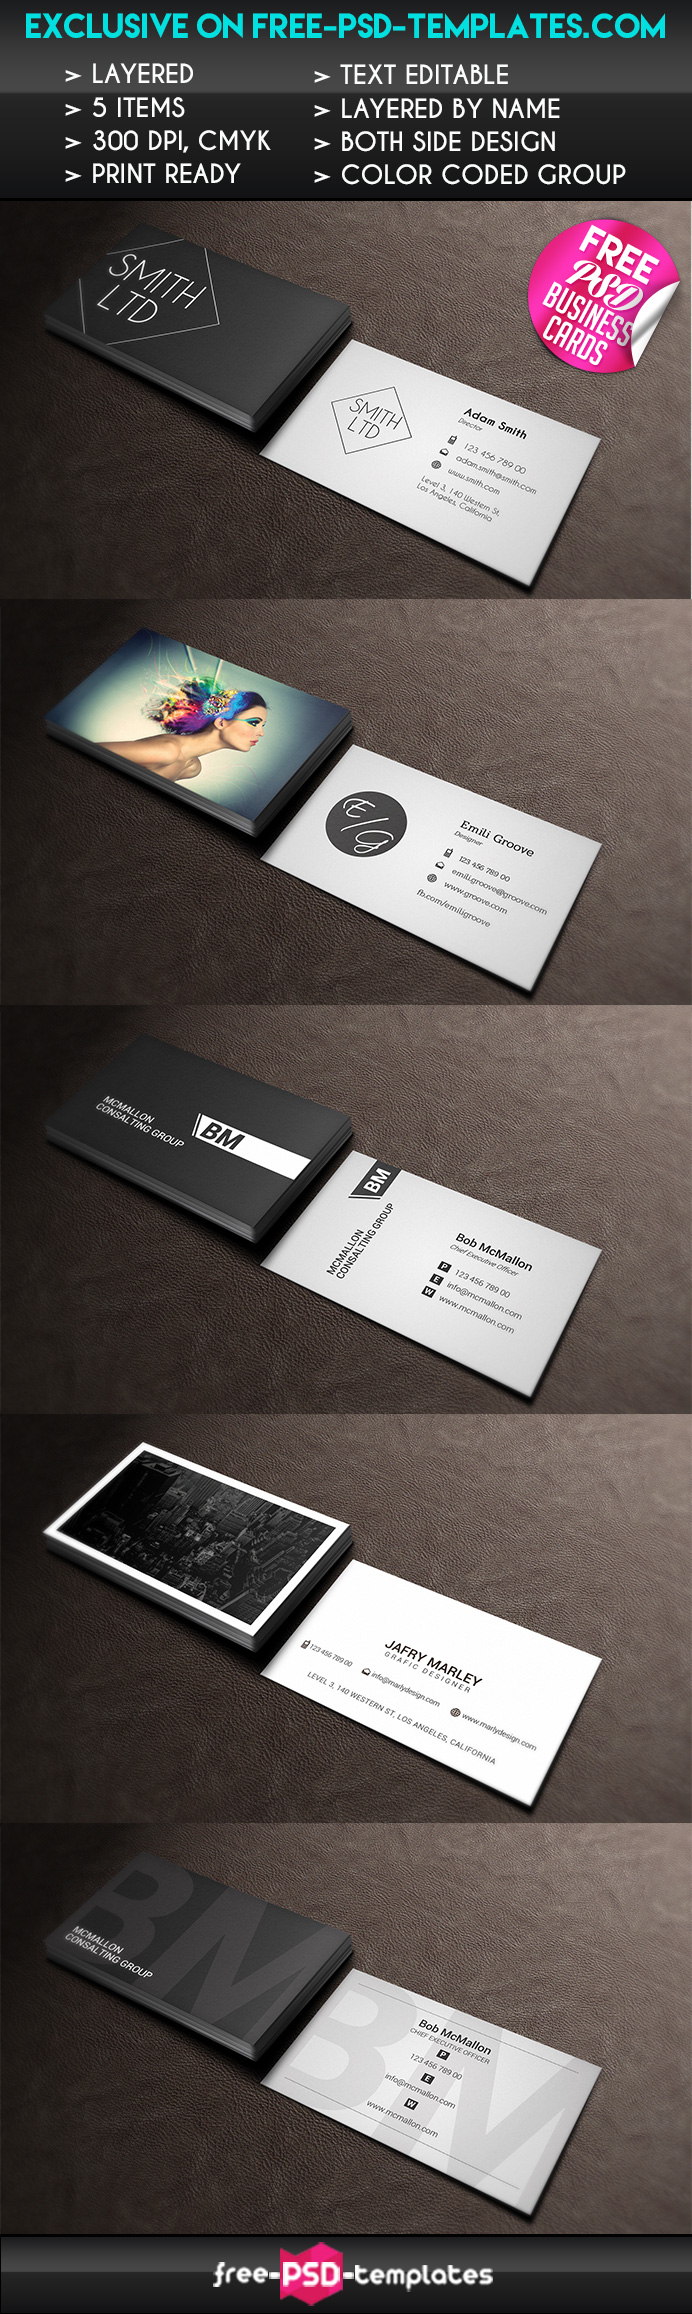 5 Free PSD Business Card Templates | Free PSD Templates